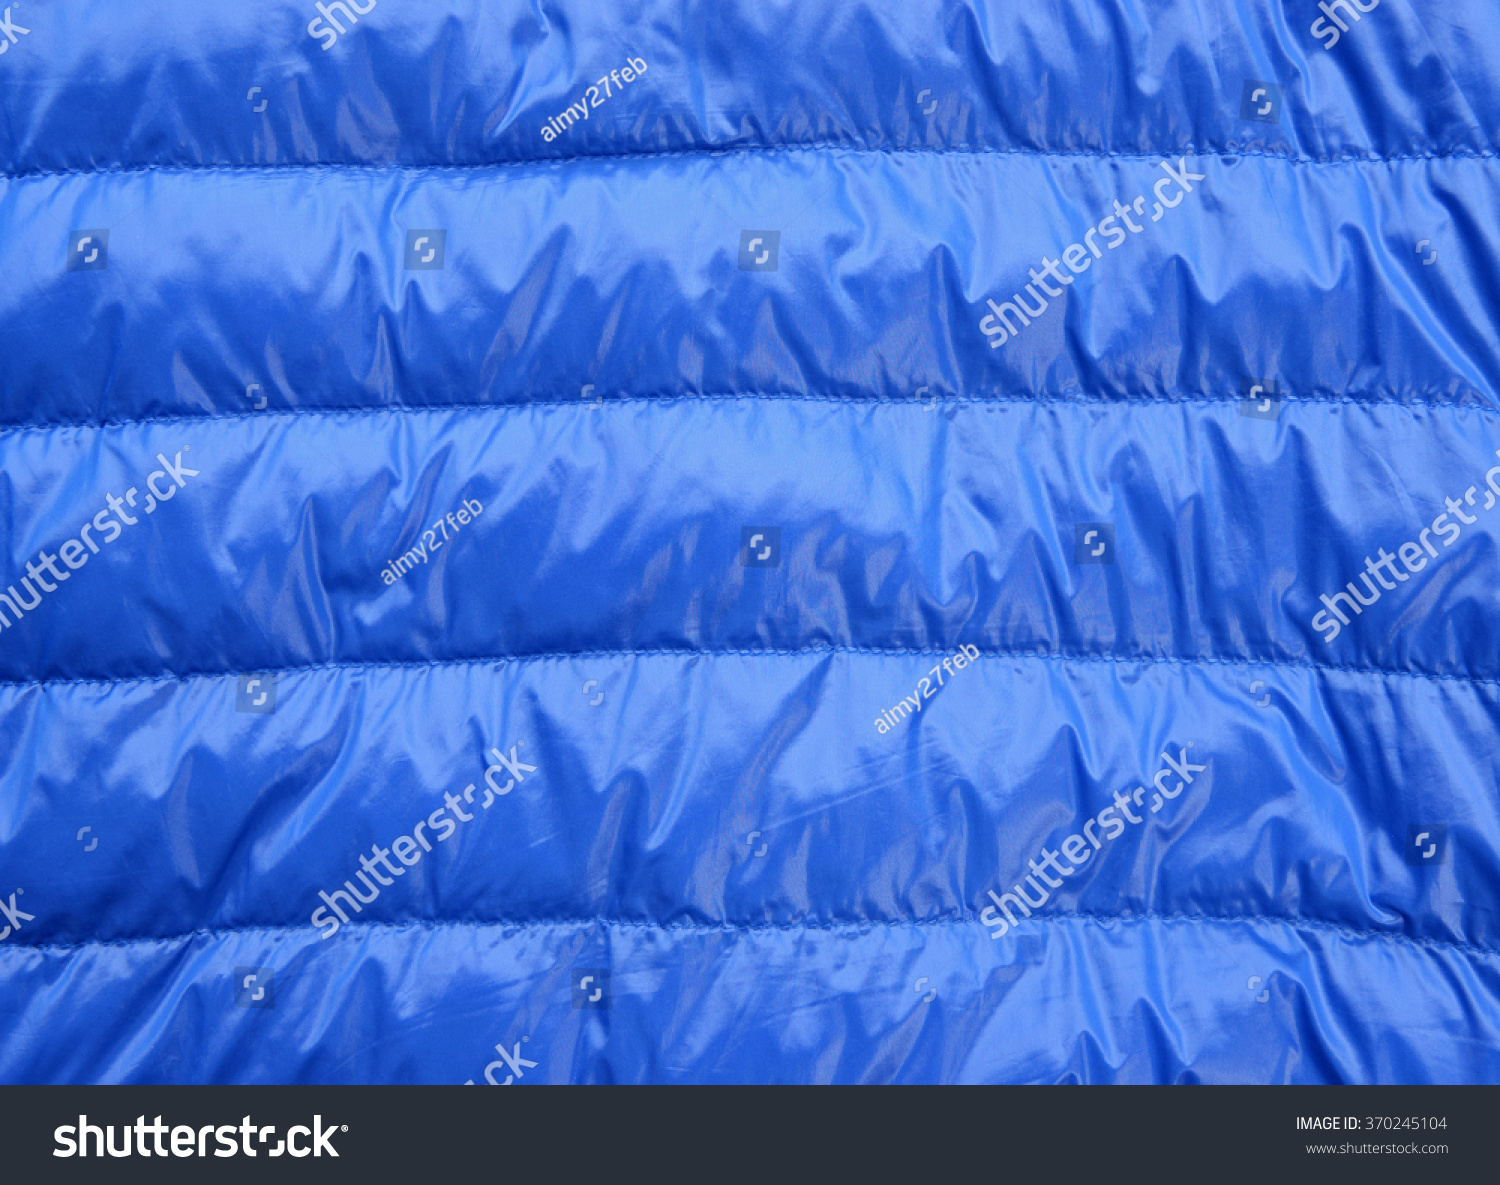 Down Jacket Material Background Stock Photo 370245104 : Shutterstock